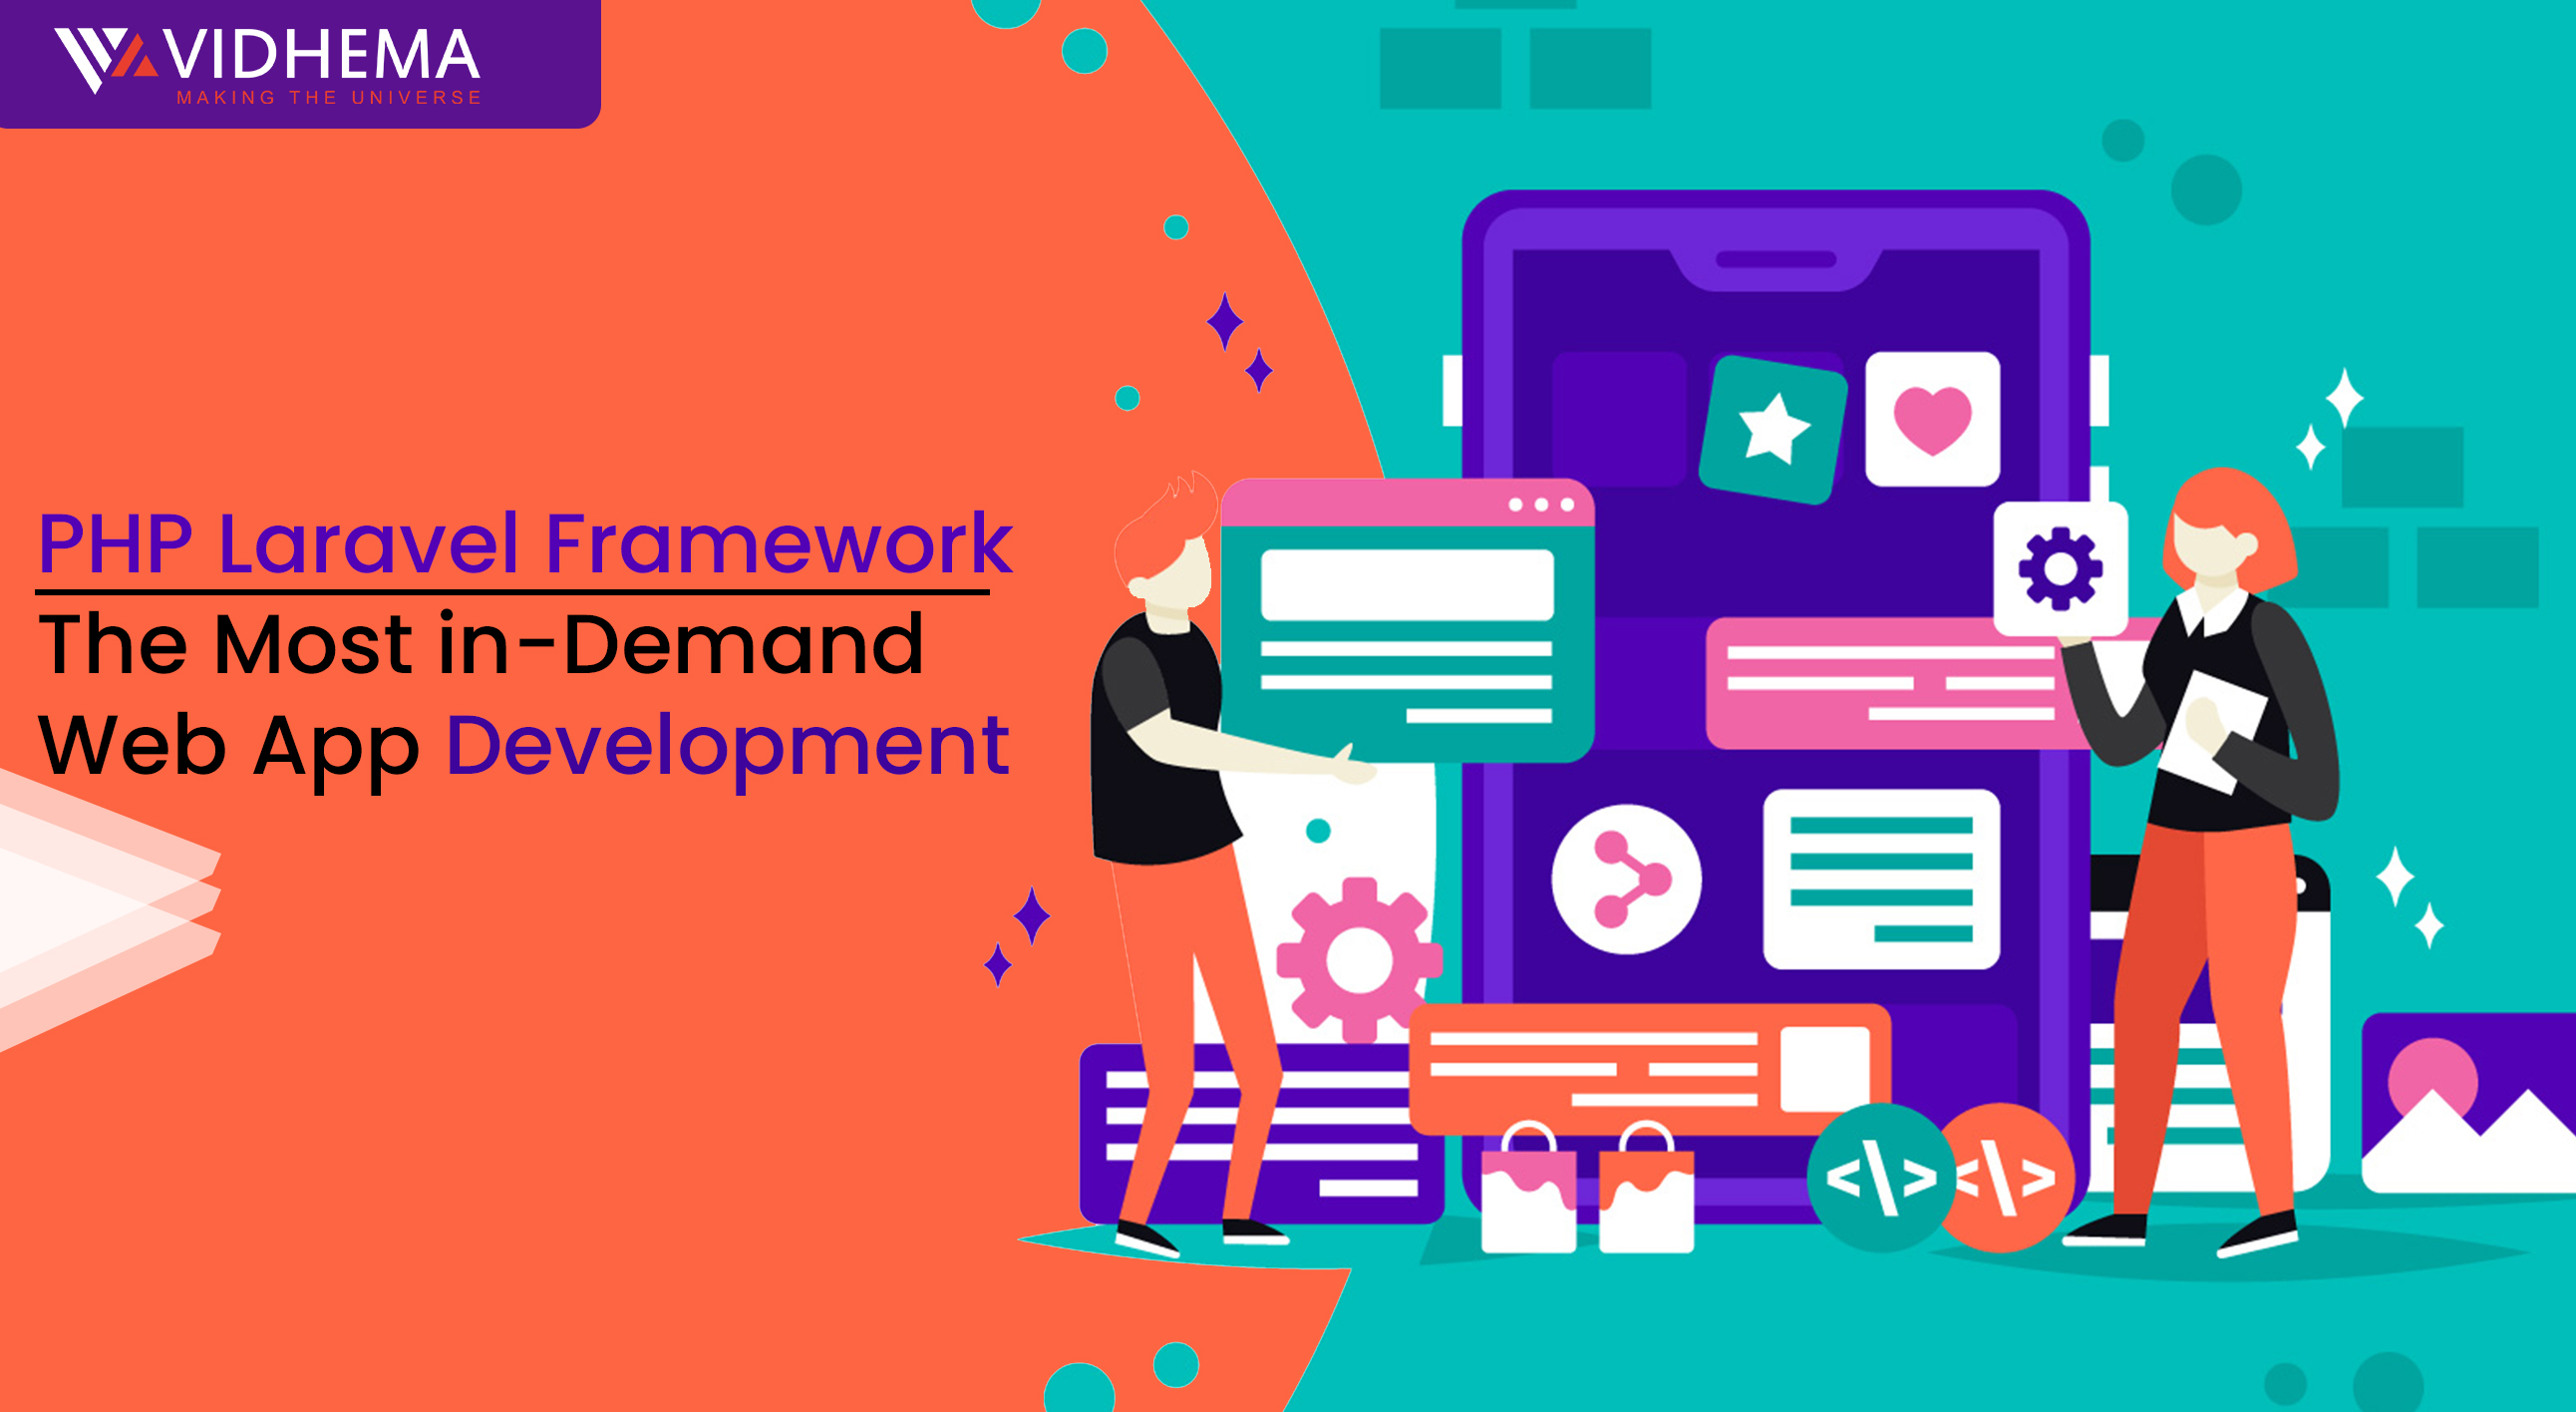 PHP Laravel Framework – The Most In-Demand Web App Development